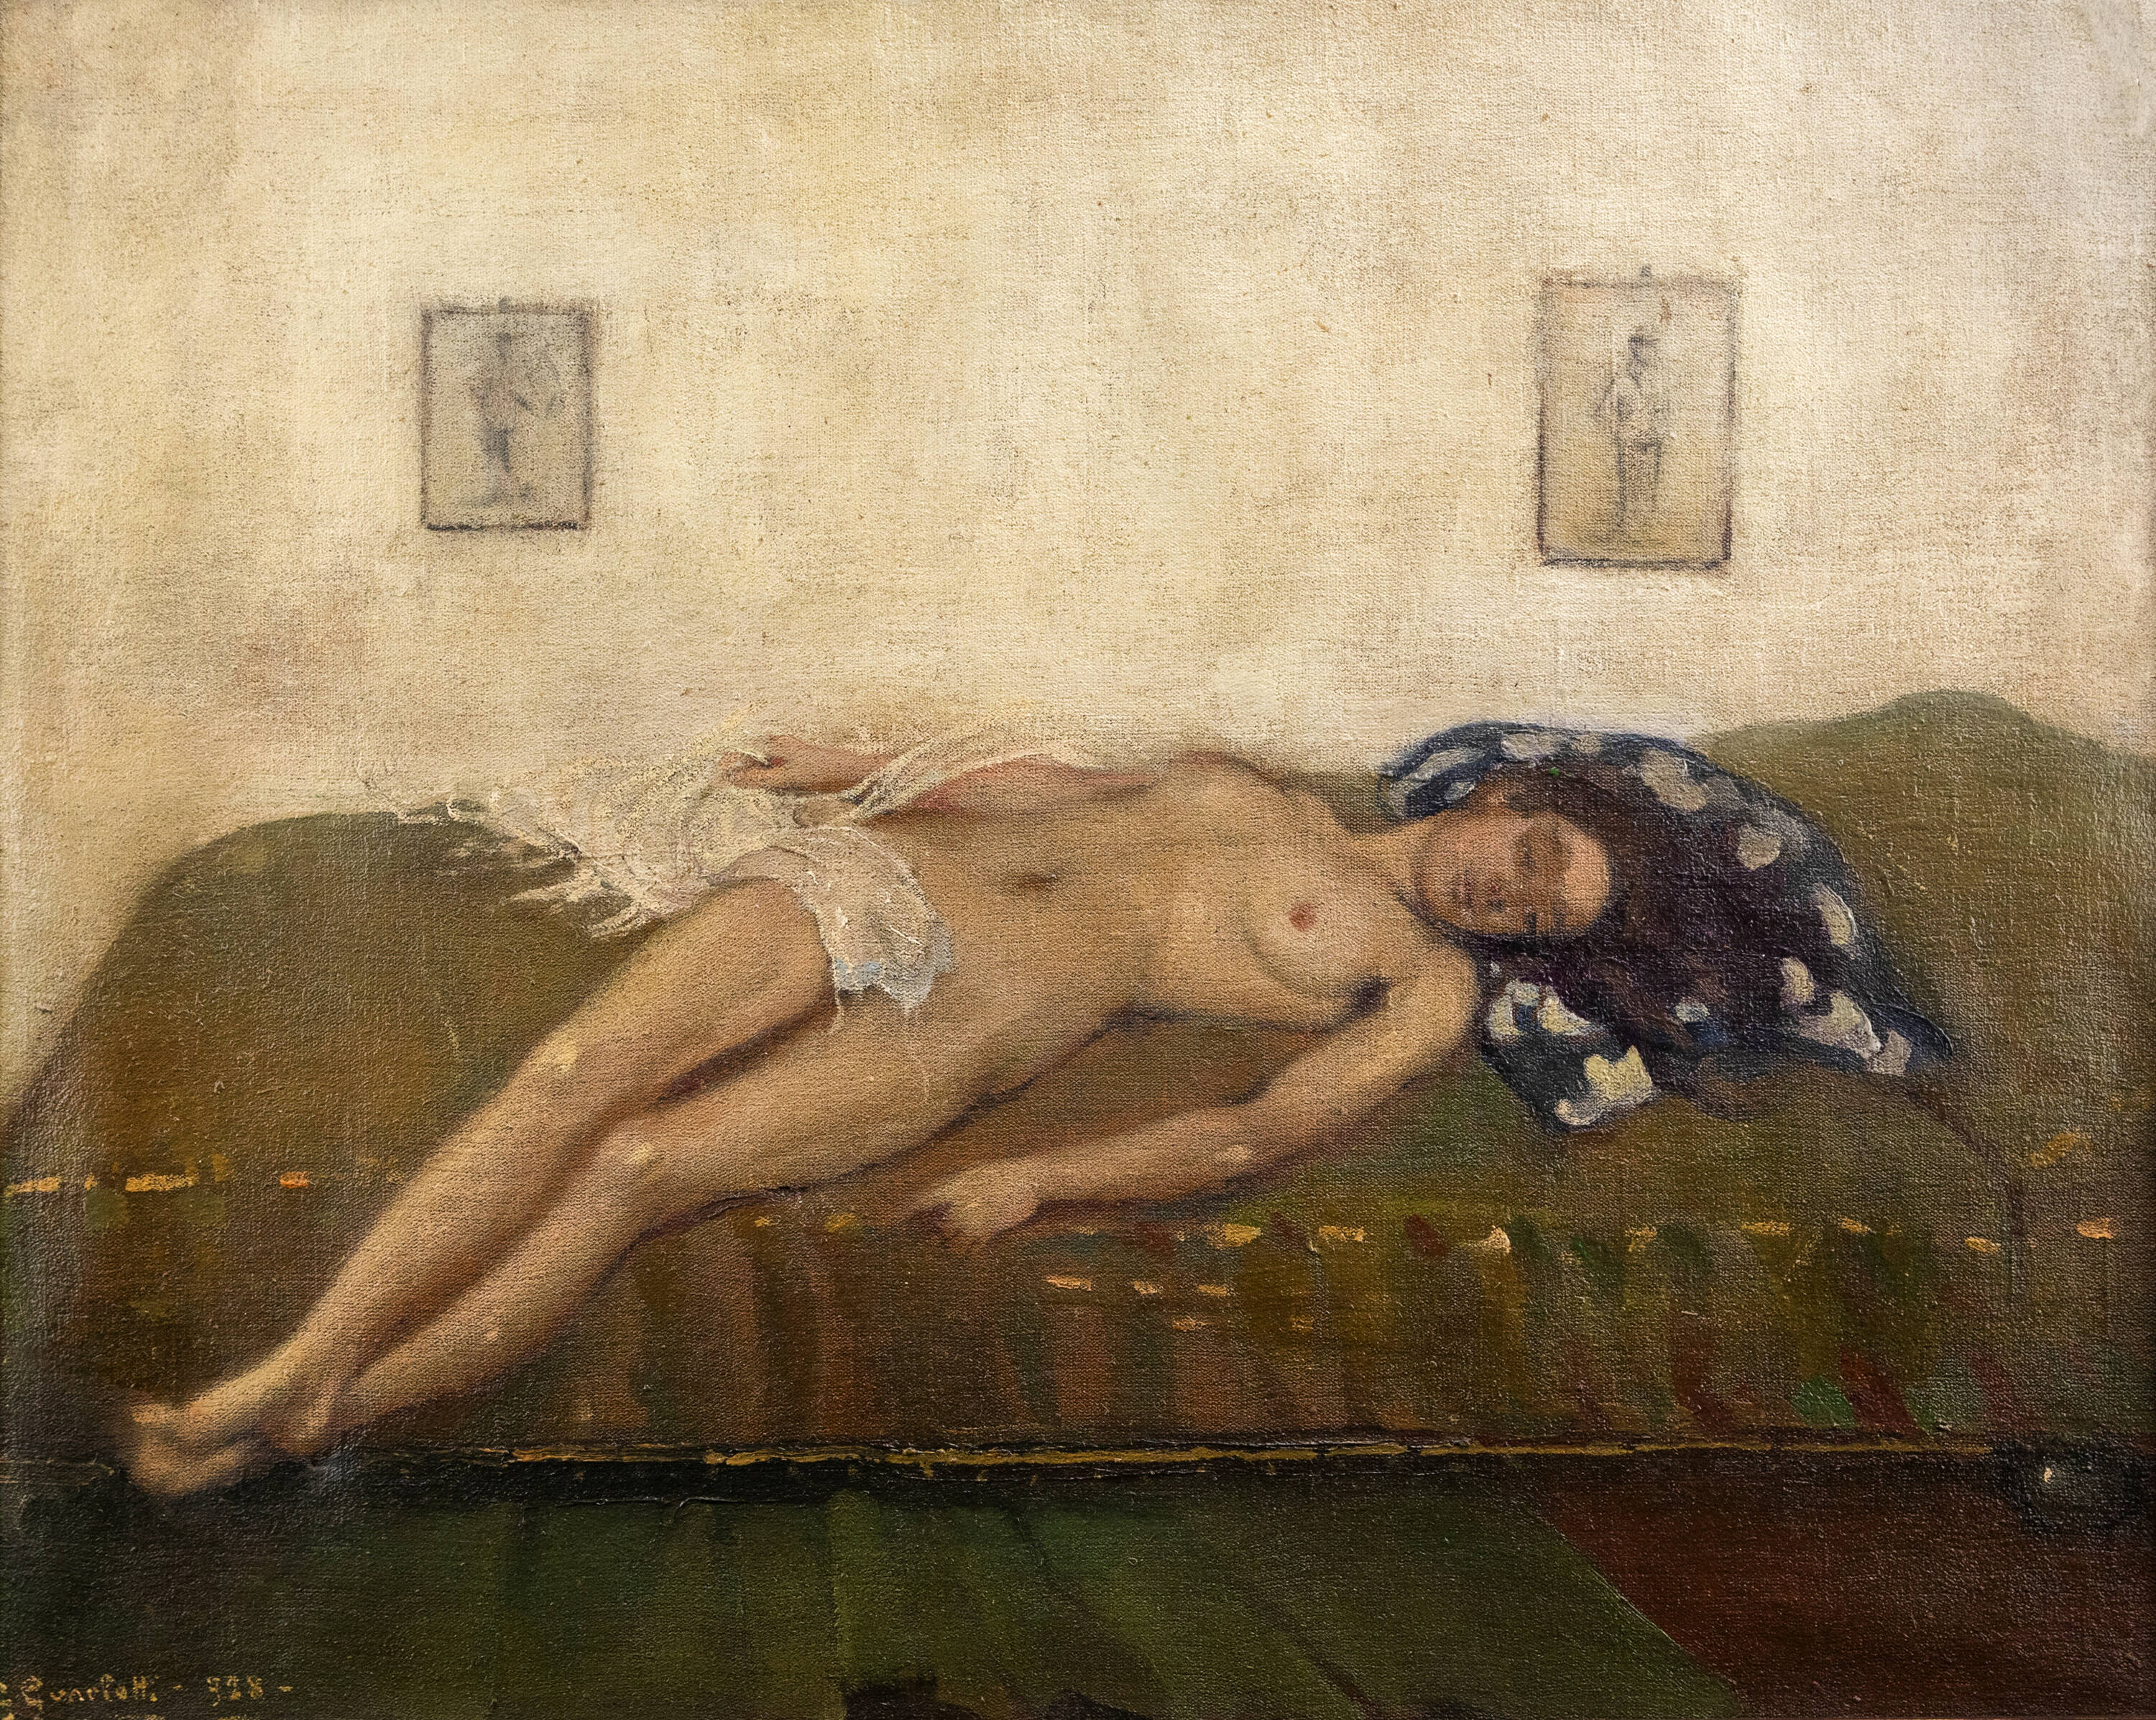 GIOVANNI GUARLOTTI - 'Nudo in posa' 1918